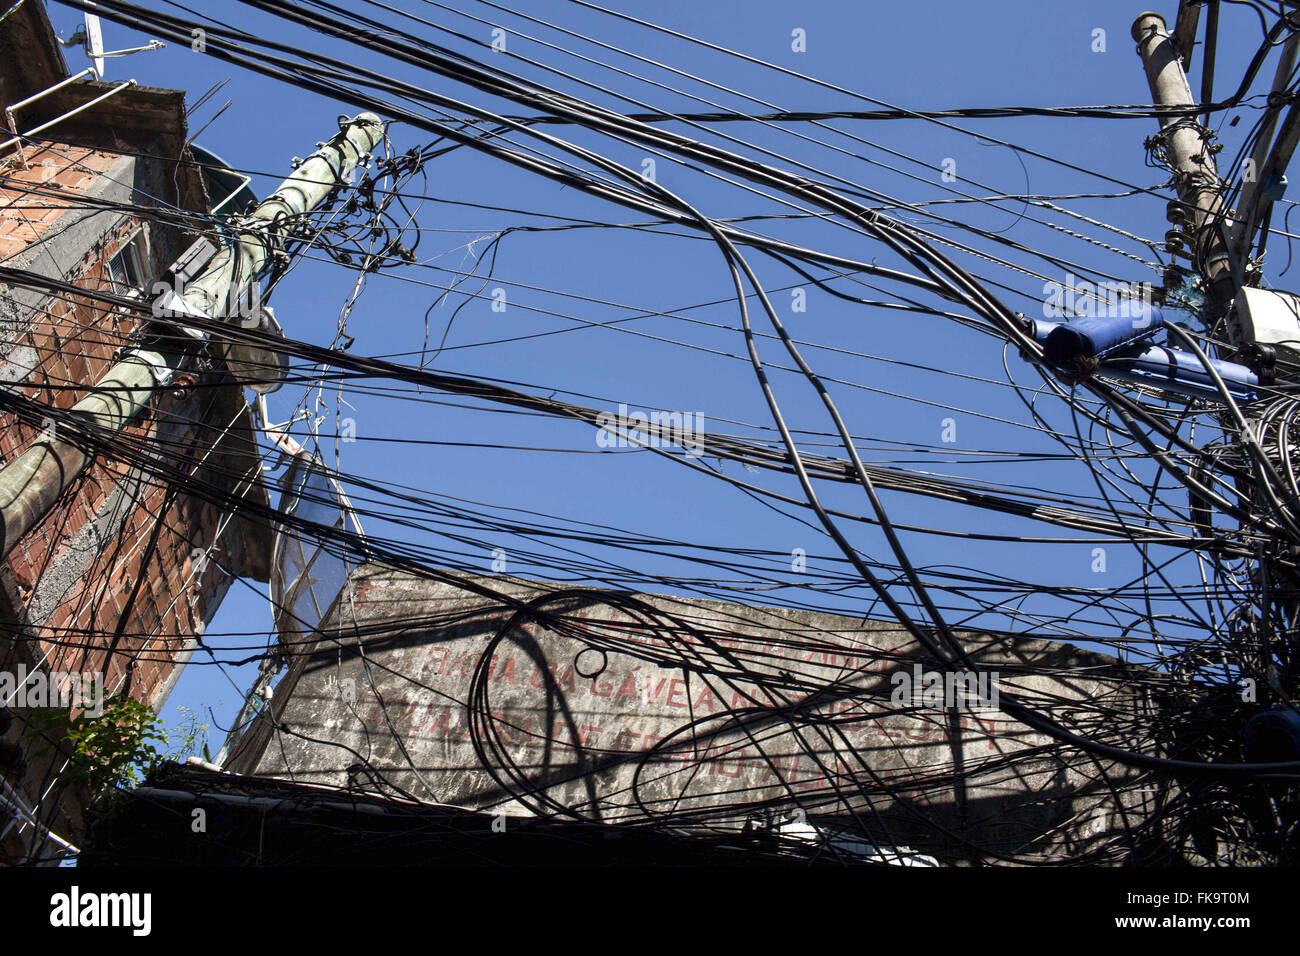 Old Wiring Stock Photos Images Alamy Electrical Outside Underground Cat Calls In The Favela Rocinha Image